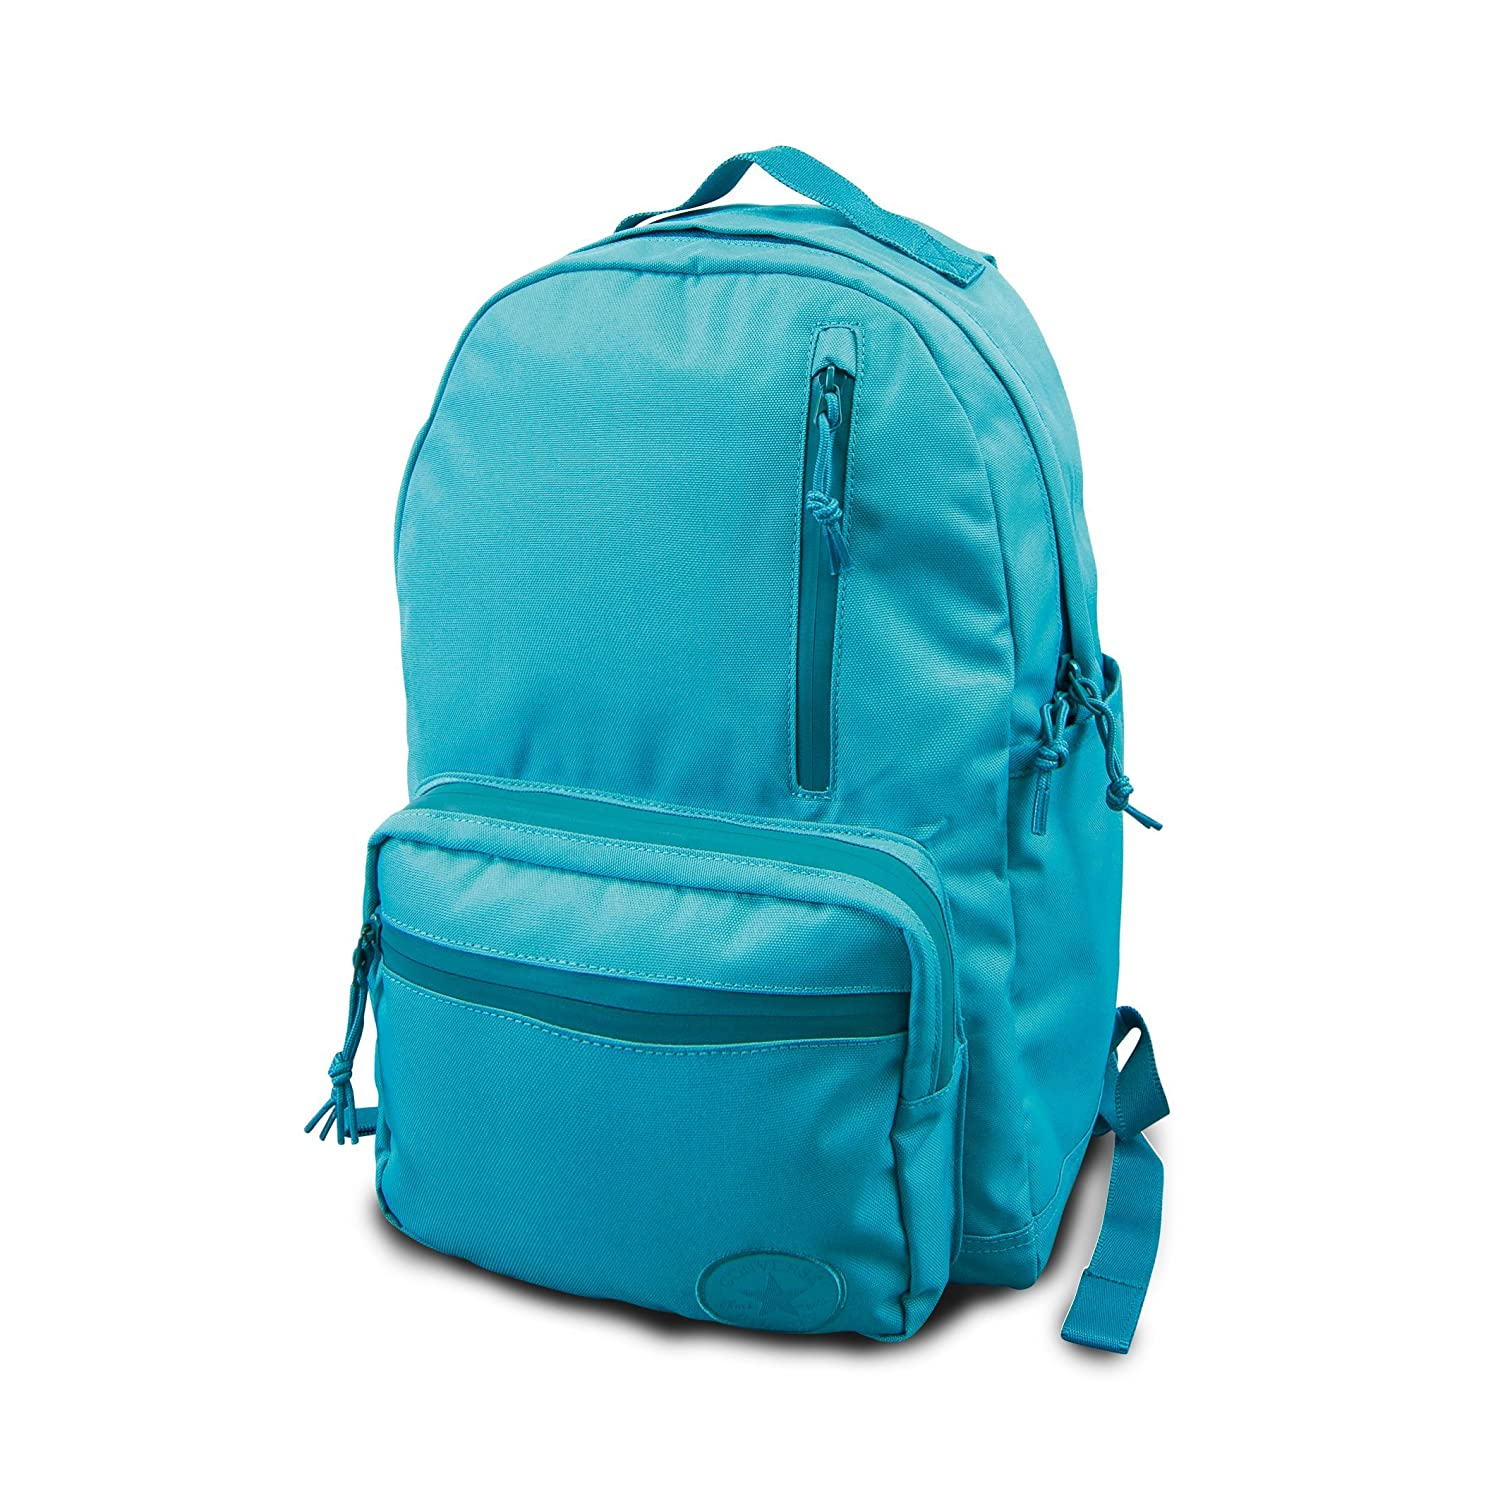 73a30014ce279 Converse All Star Go Backpack Tonal Colors, Teal Blue One Size